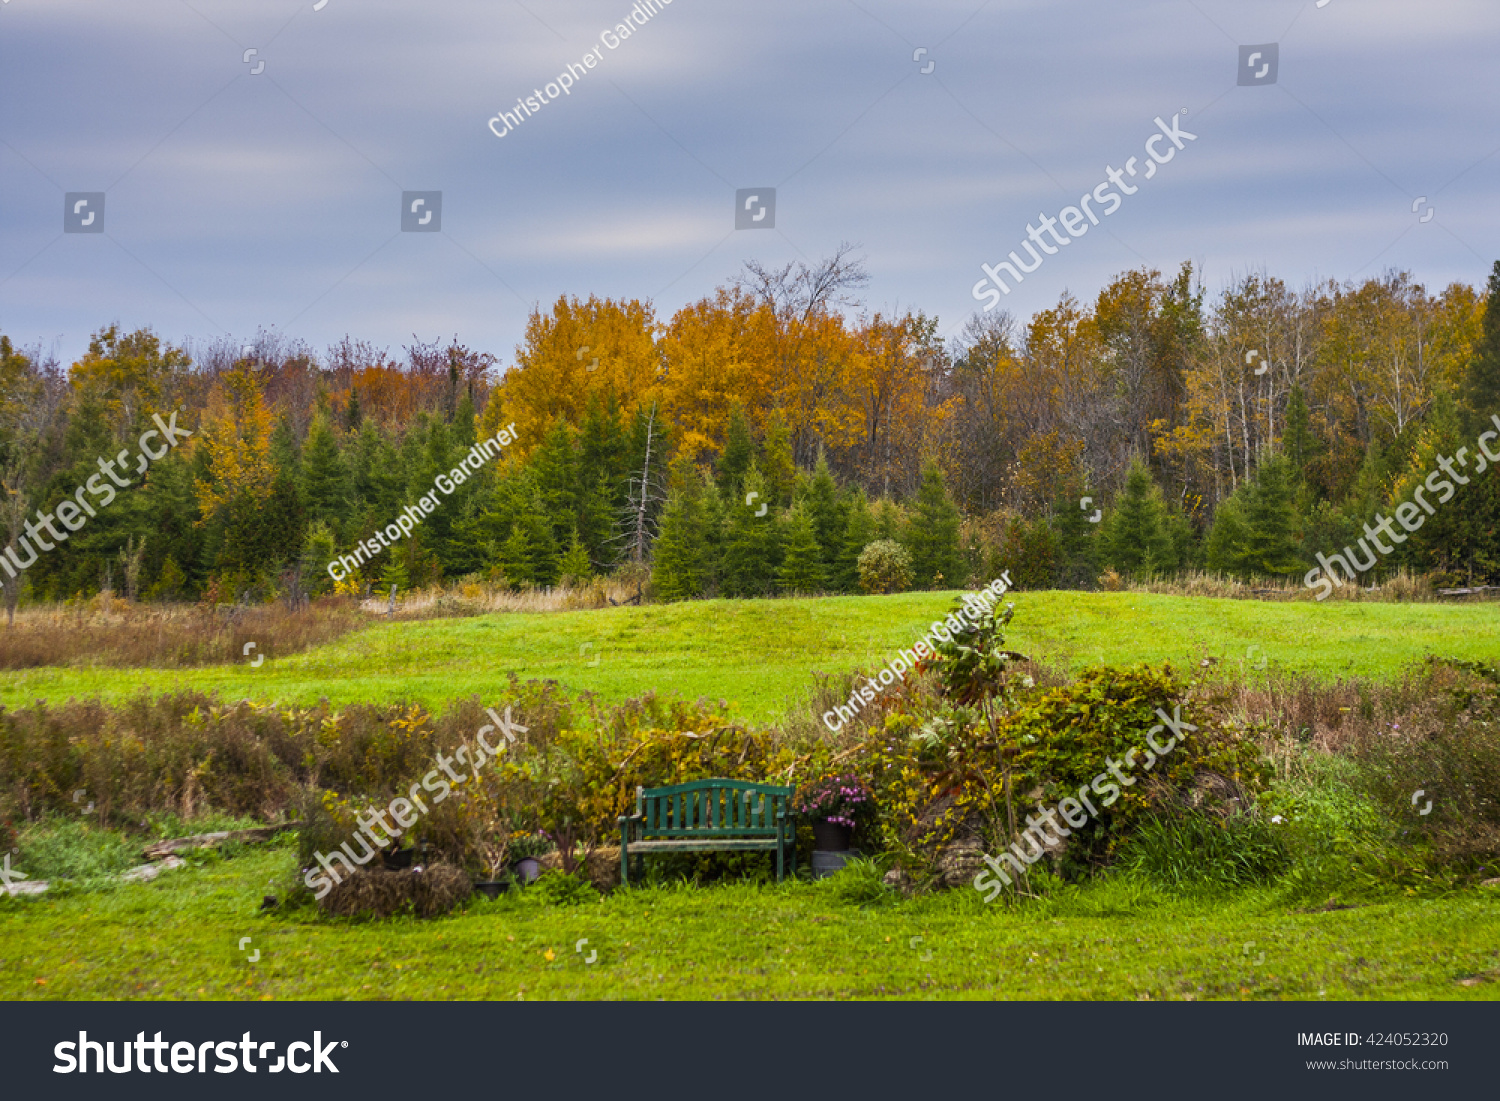 Trees Forest Changing Colour Autumn Stock Photo 424052320 - Shutterstock